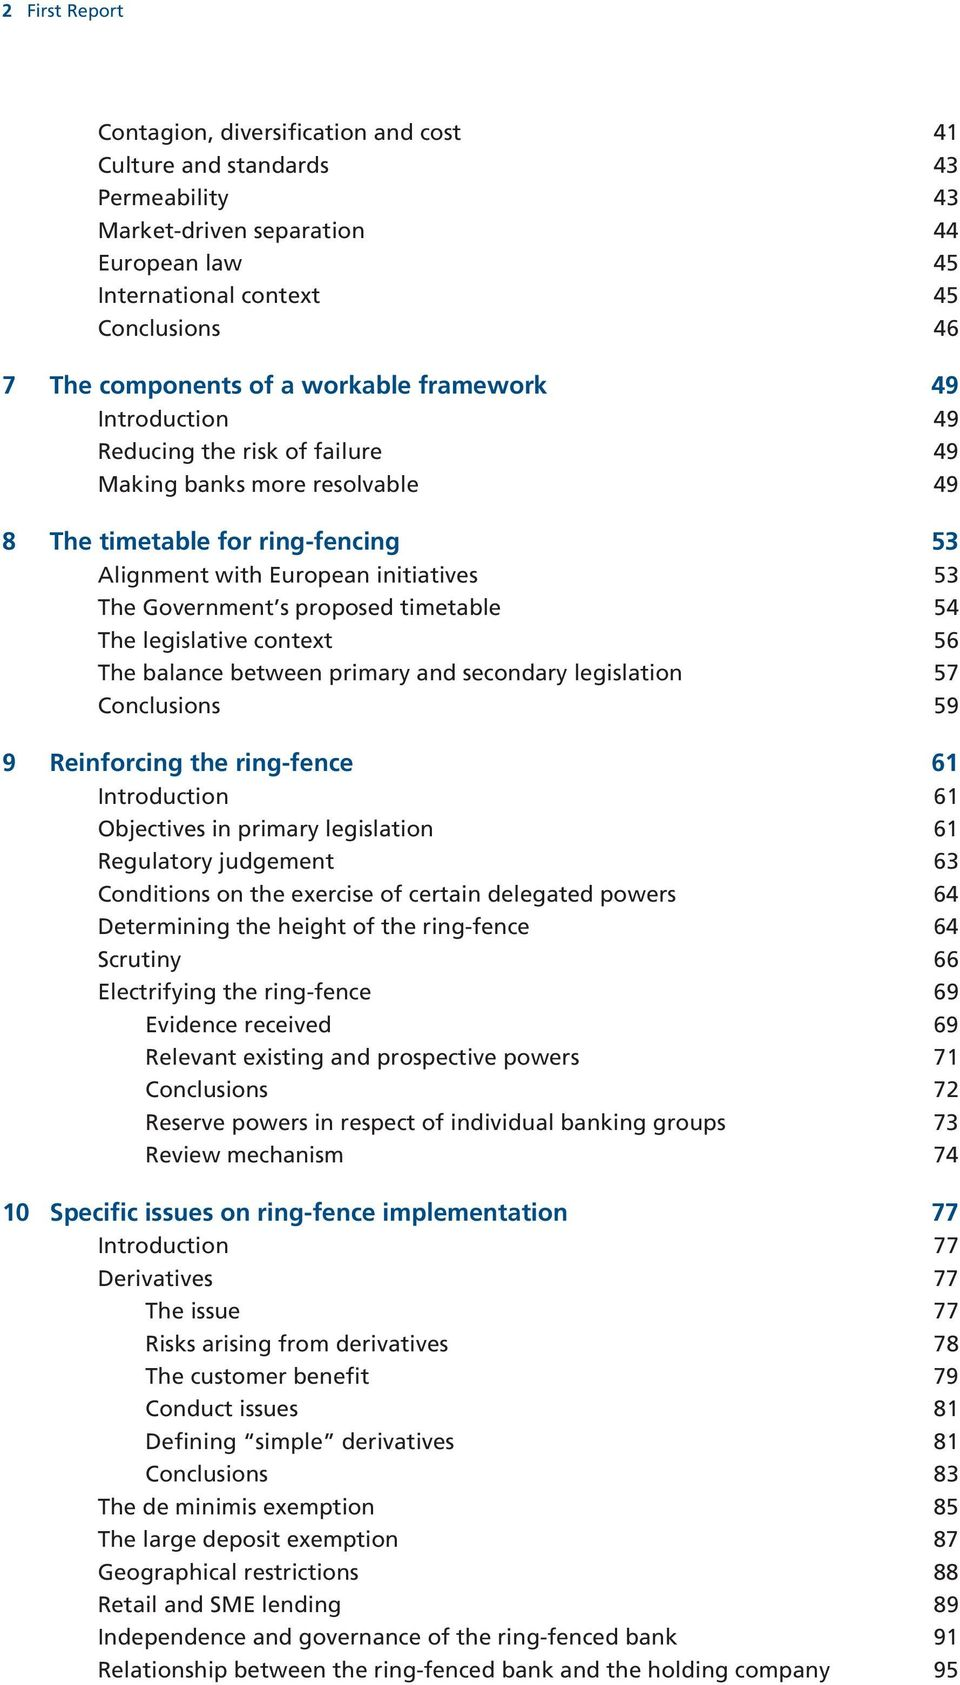 proposed timetable 54 The legislative context 56 The balance between primary and secondary legislation 57 Conclusions 59 9 Reinforcing the ring-fence 61 Introduction 61 Objectives in primary